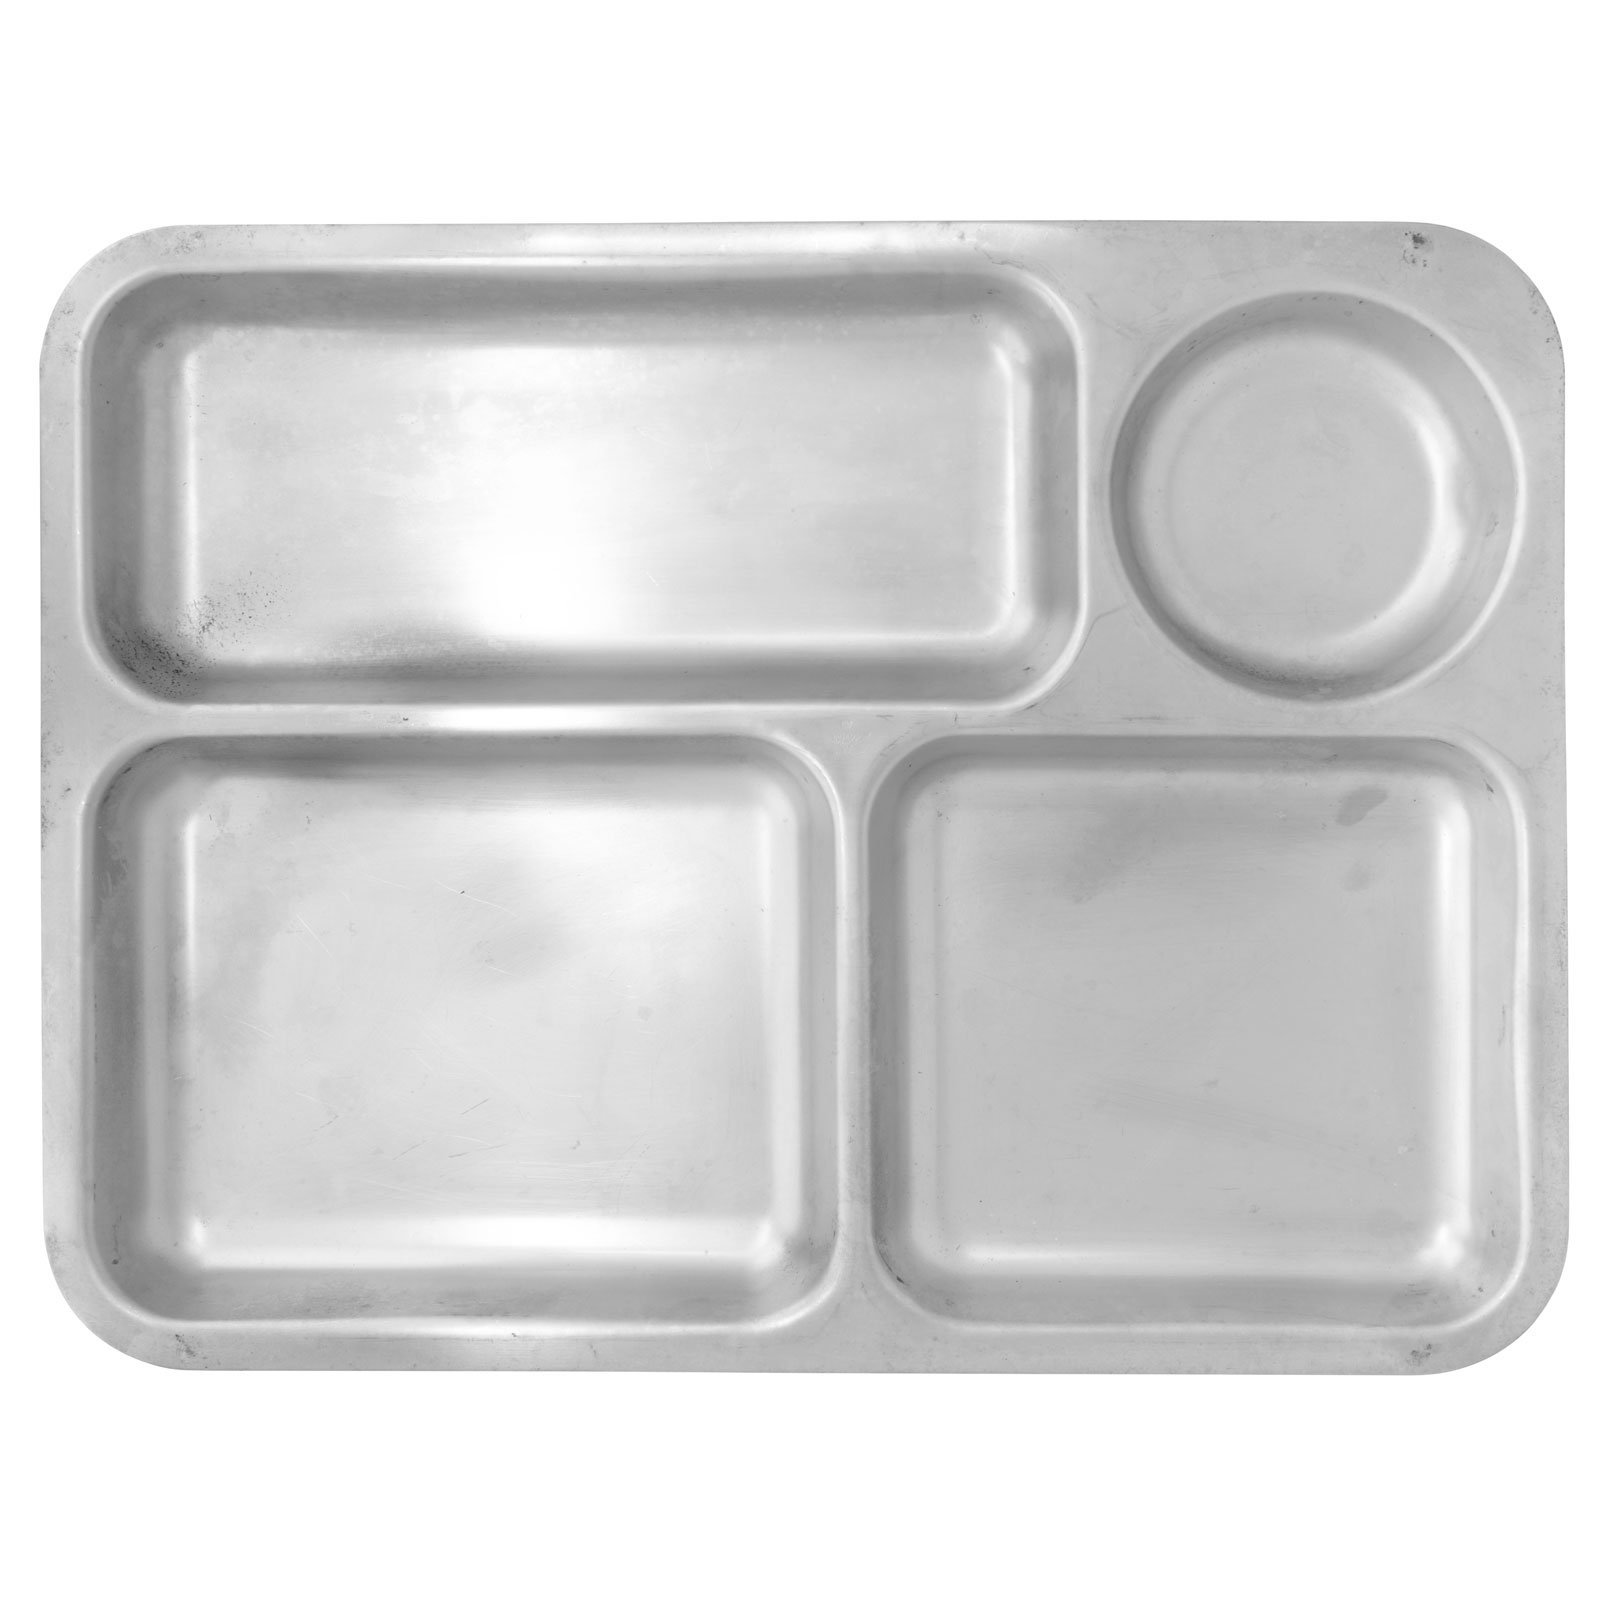 SwissLink Italian Air Force Stainless Cafeteria Tray